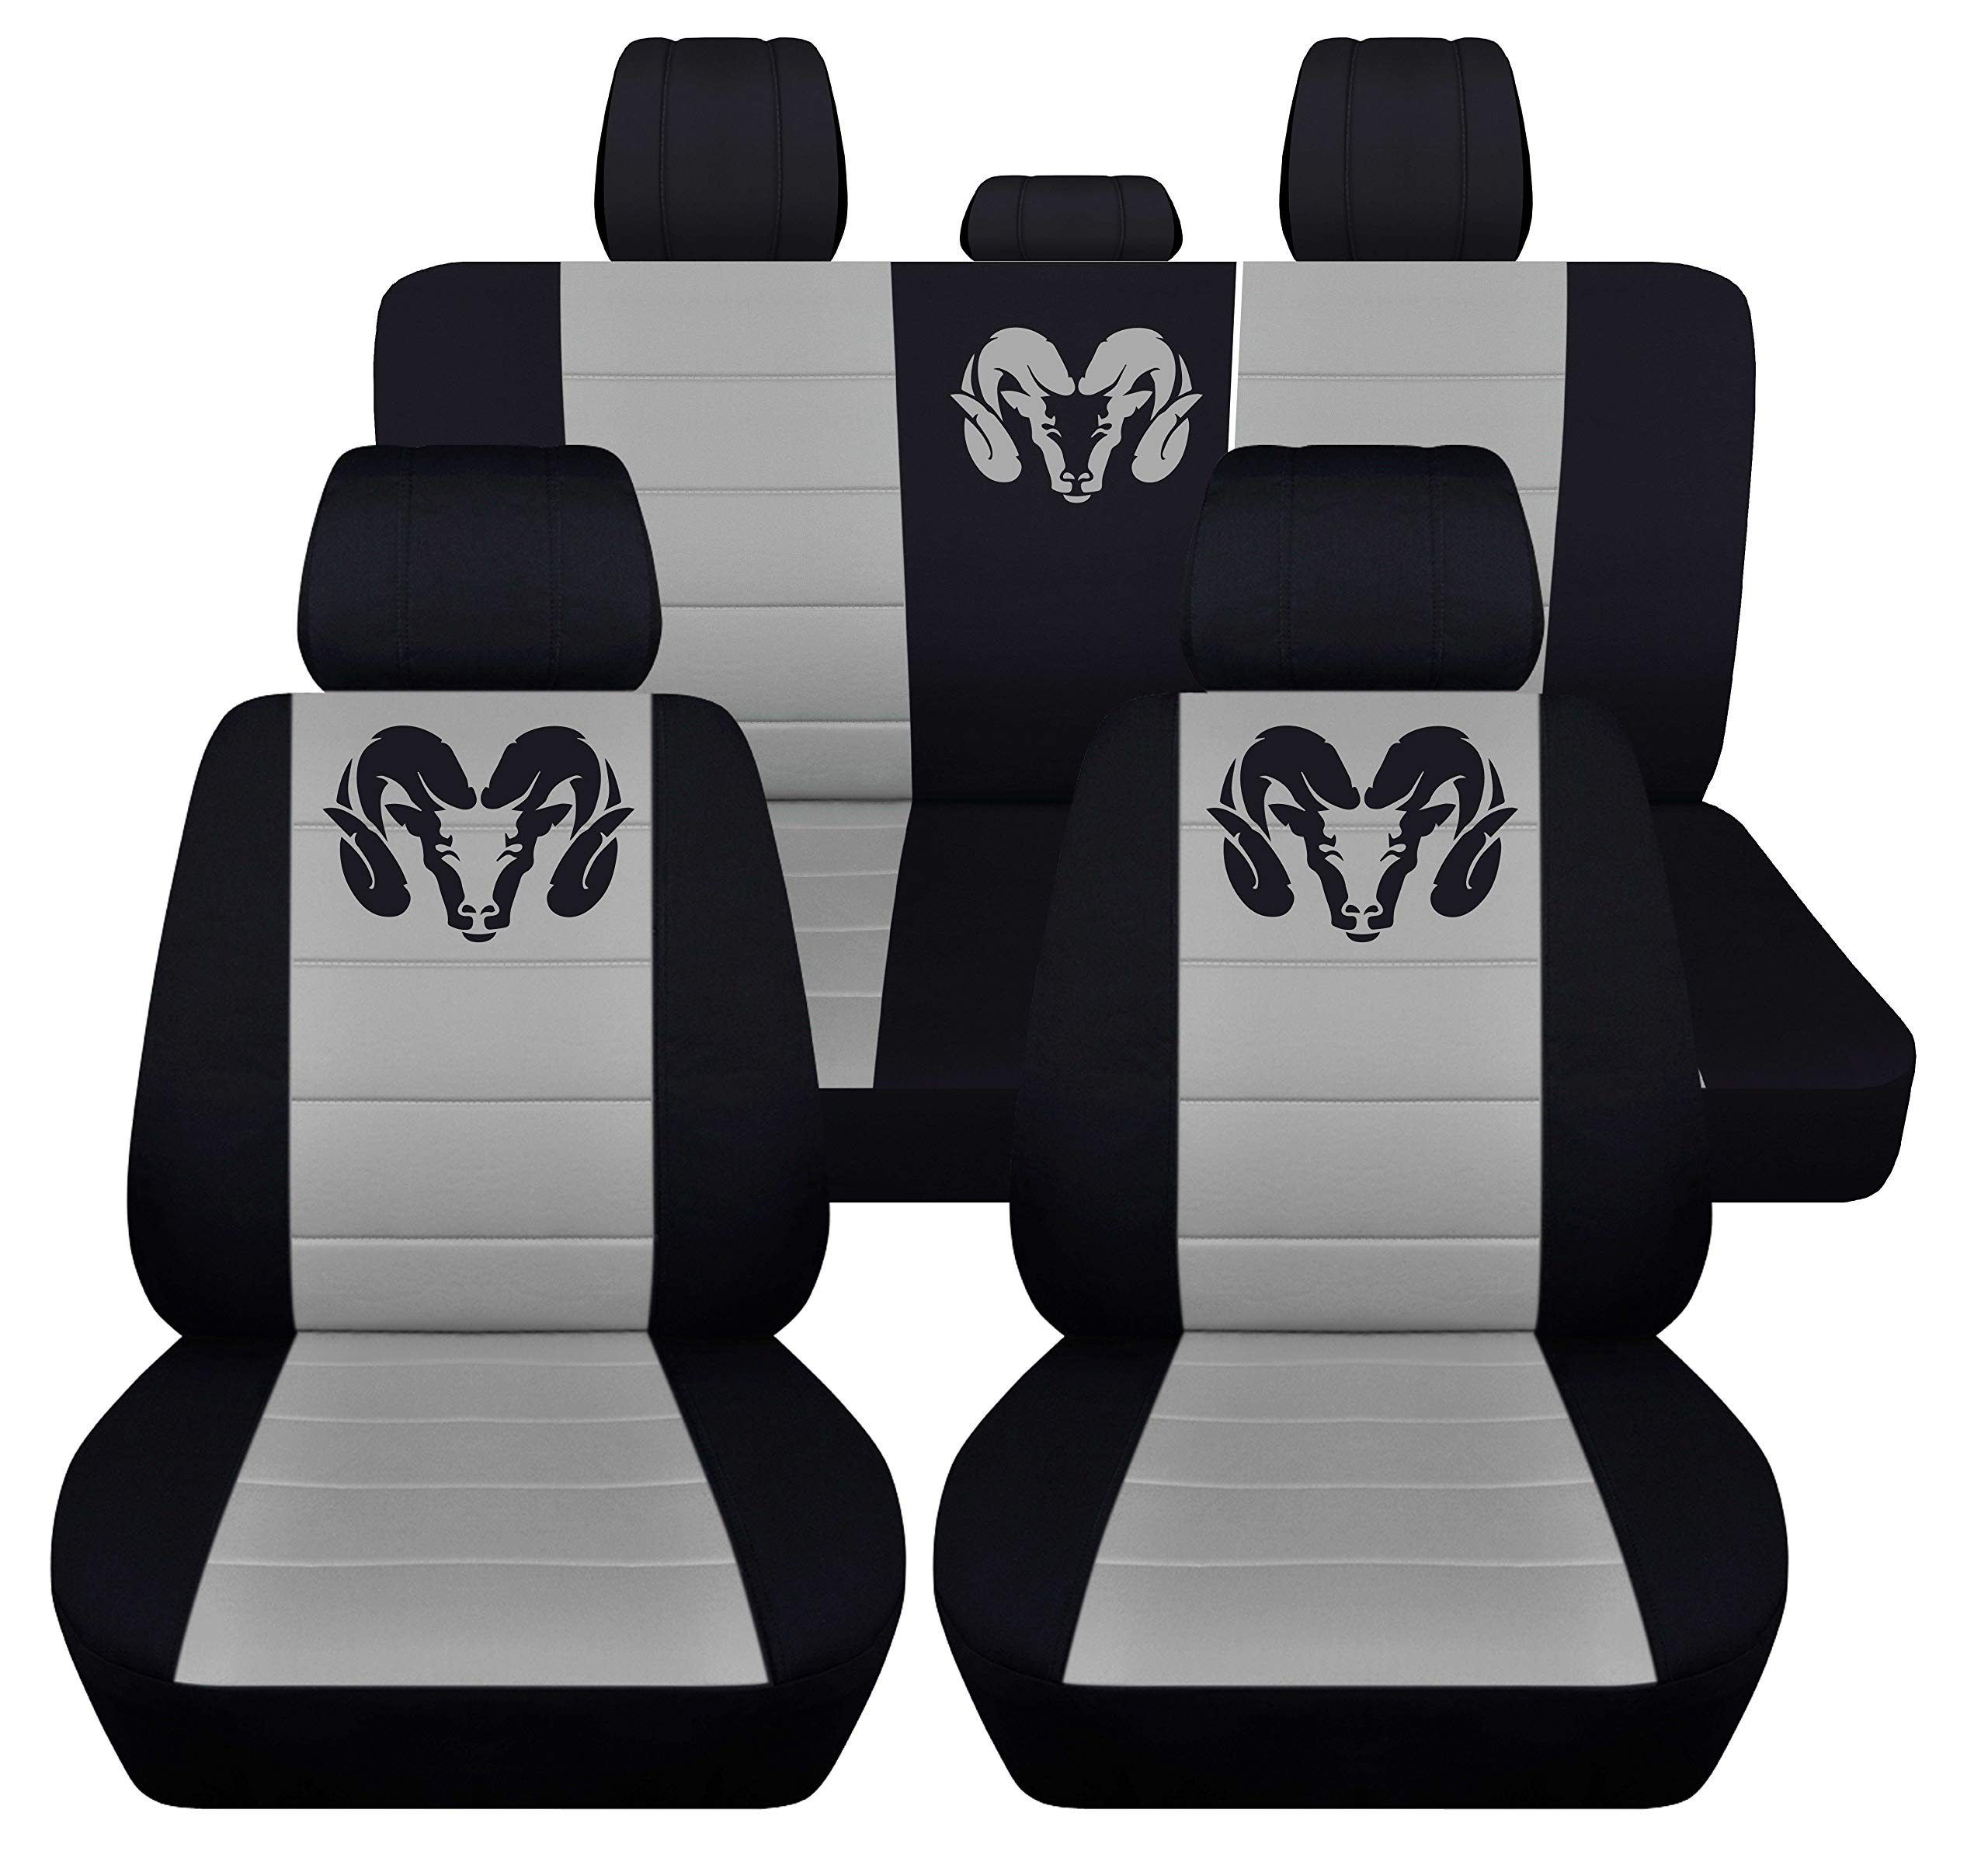 Fits 2012 to 2018 Dodge Ram Front and Rear Ram Seat Covers 22 Color Options (40-60 Rear, Black Silver)